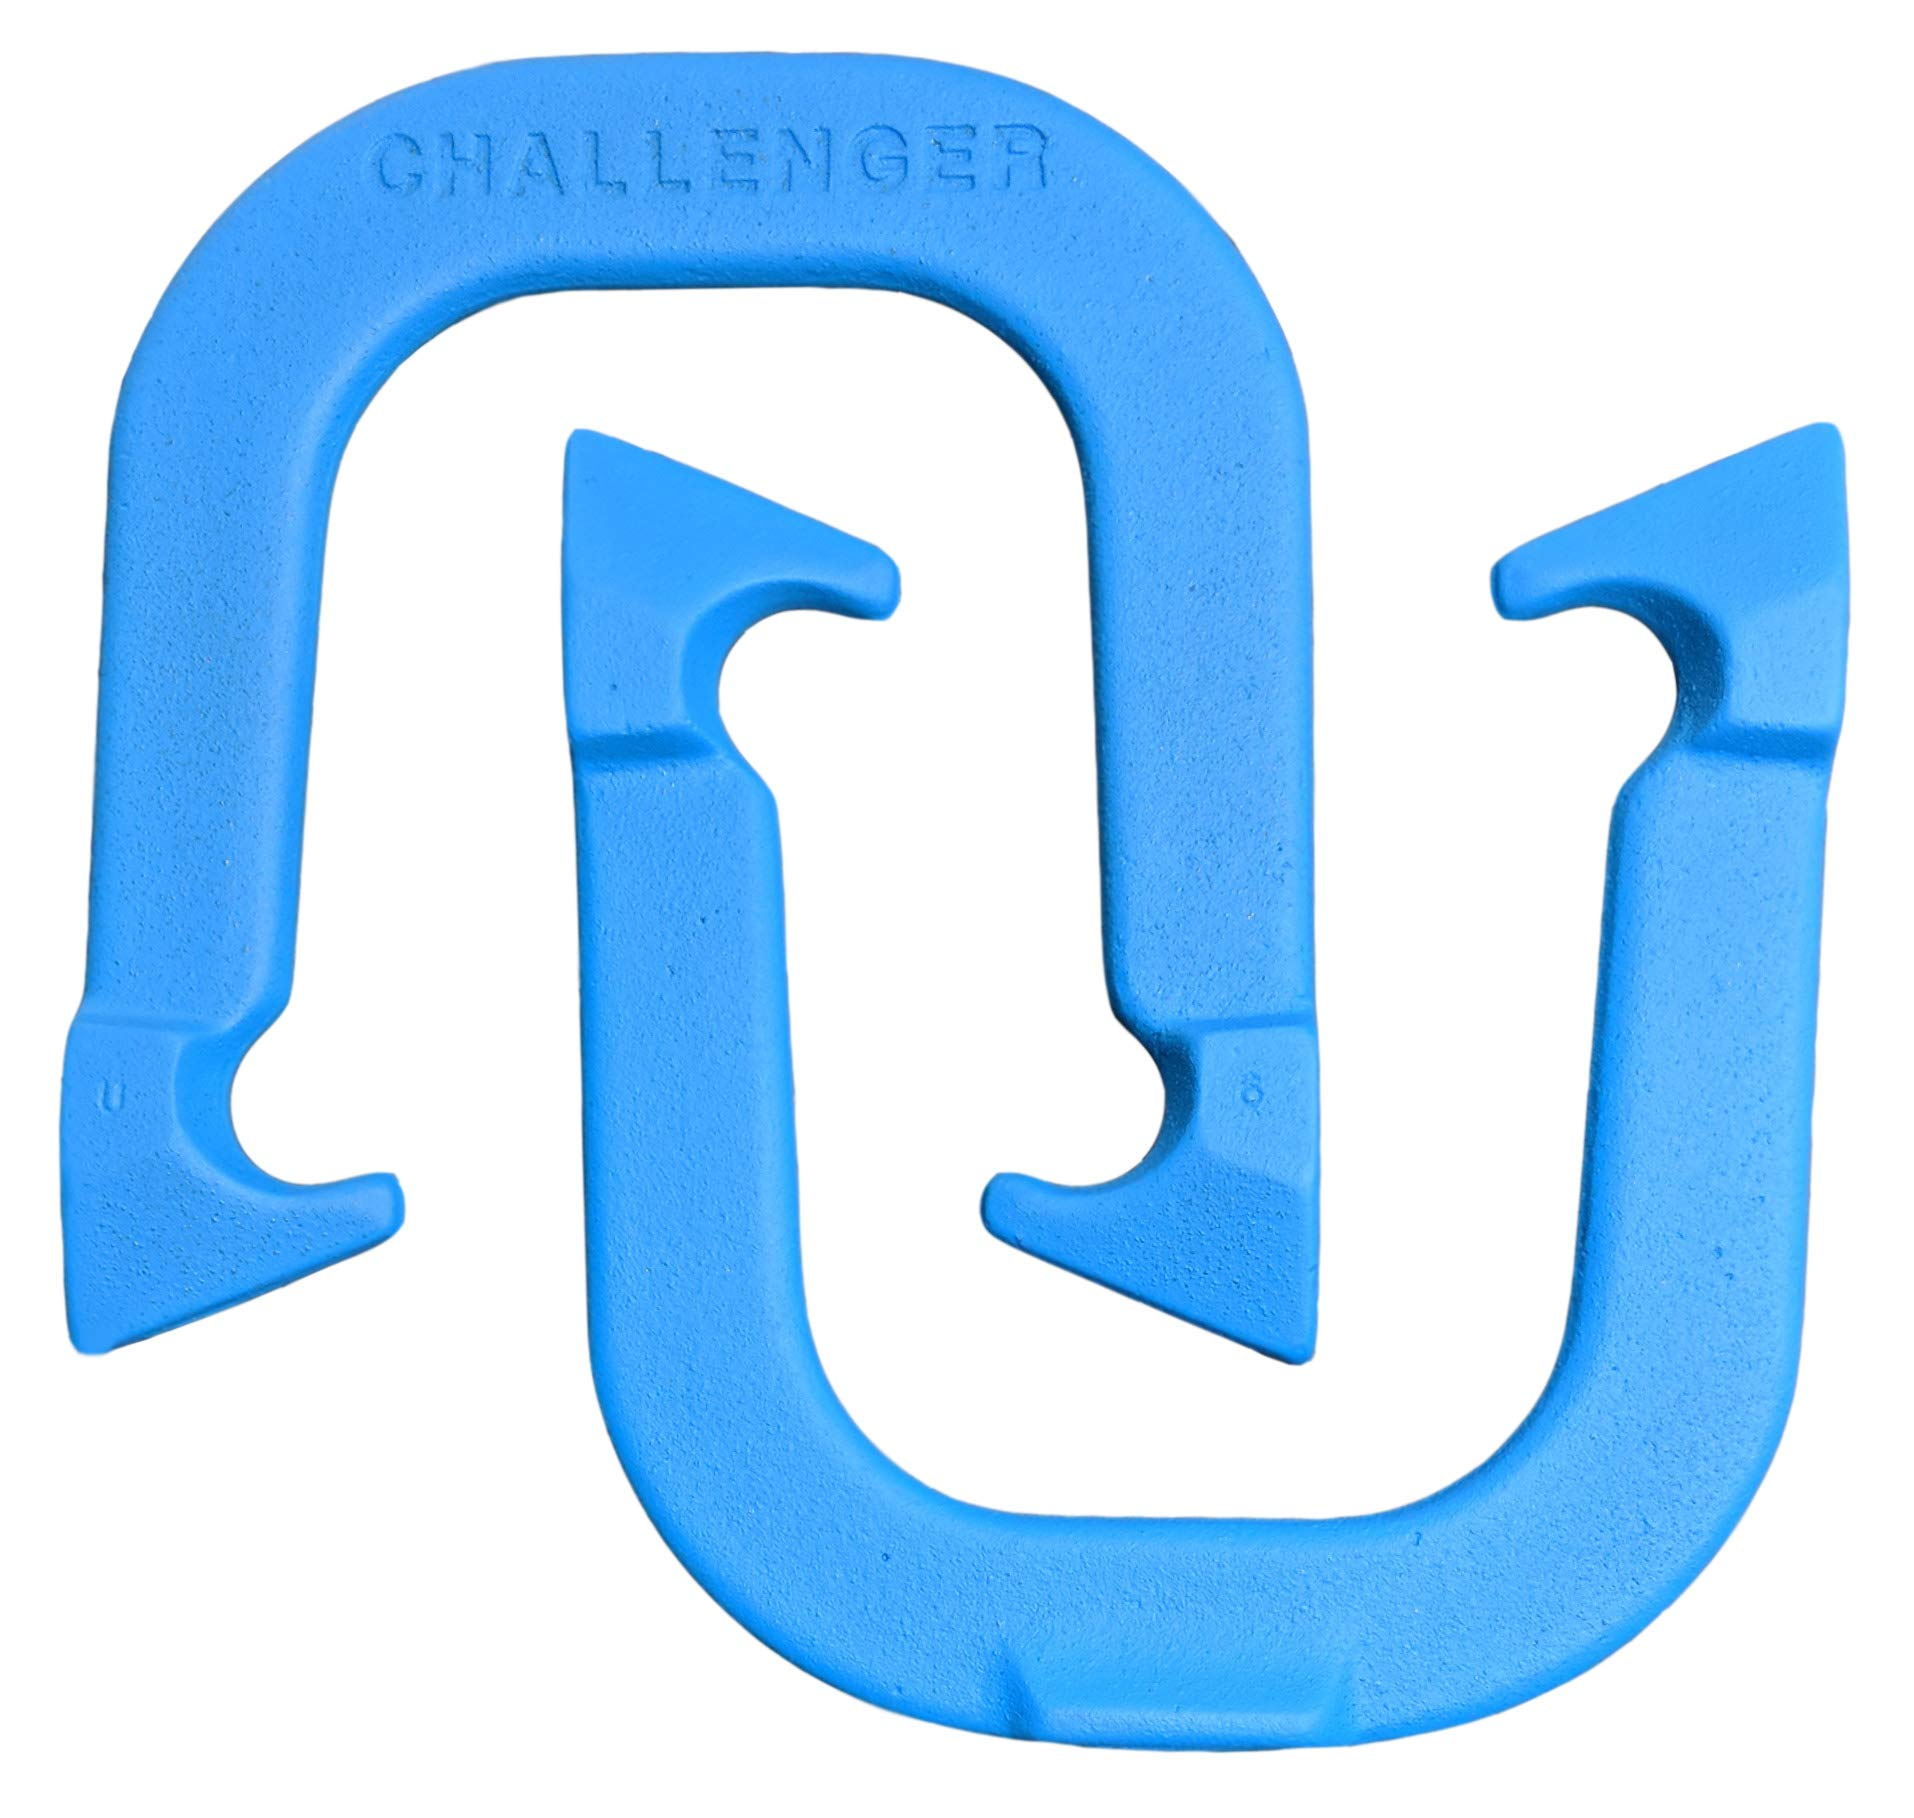 Challenger Professional Pitching Horseshoes- Made in USA (Blue- Single Pair (2 Shoes)) by Thoroughbred Horseshoes